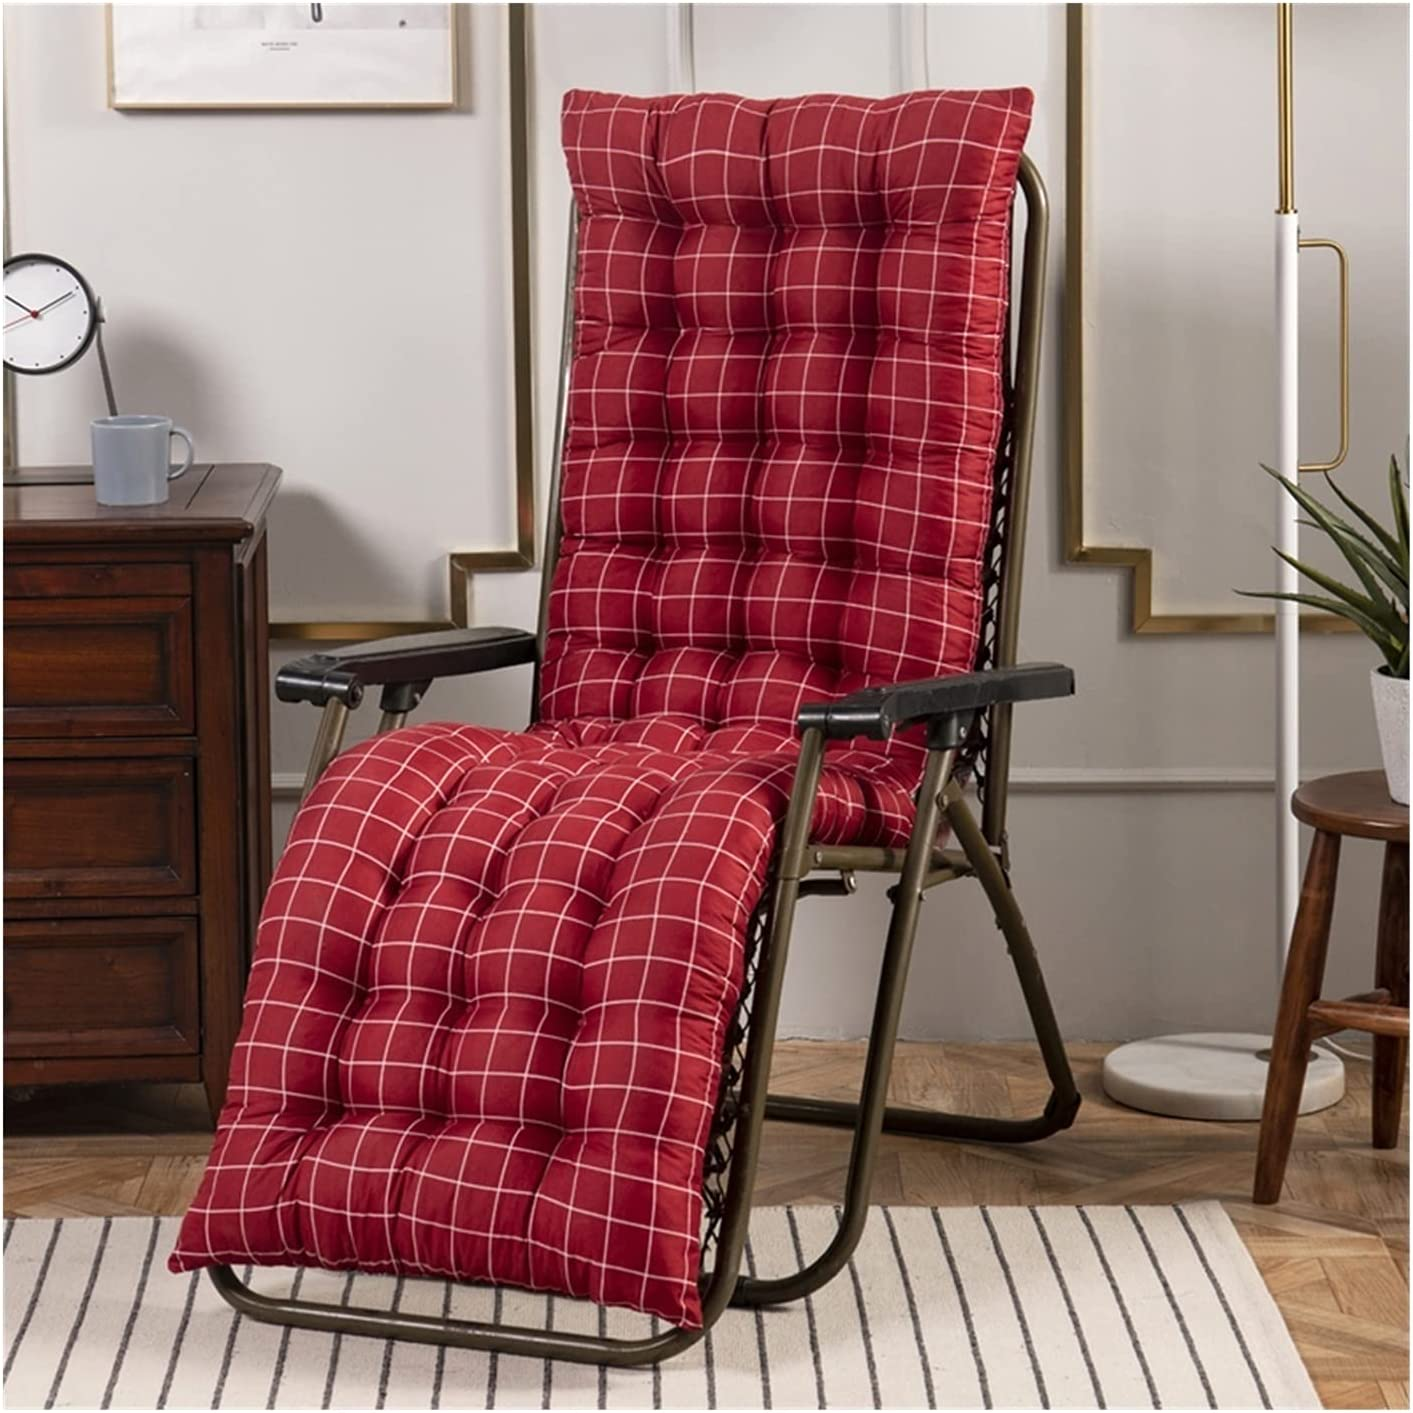 GXFWJD Rocking Chair Cushion Including Long-awaited Gorgeous Lounger (Not Ch